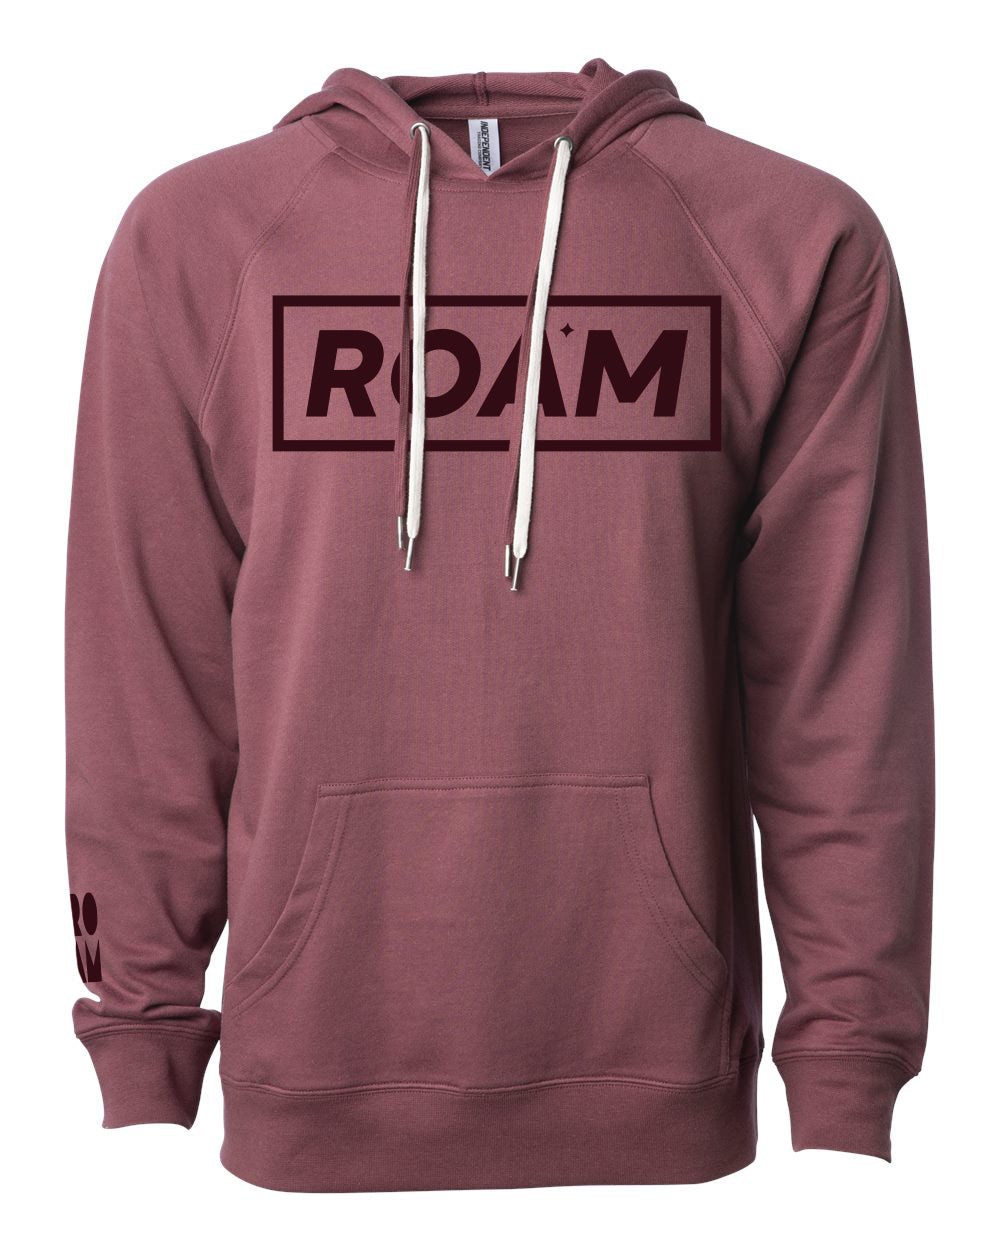 Icon Loopback Boxed ROAM Terry Hoodie - <br> Port